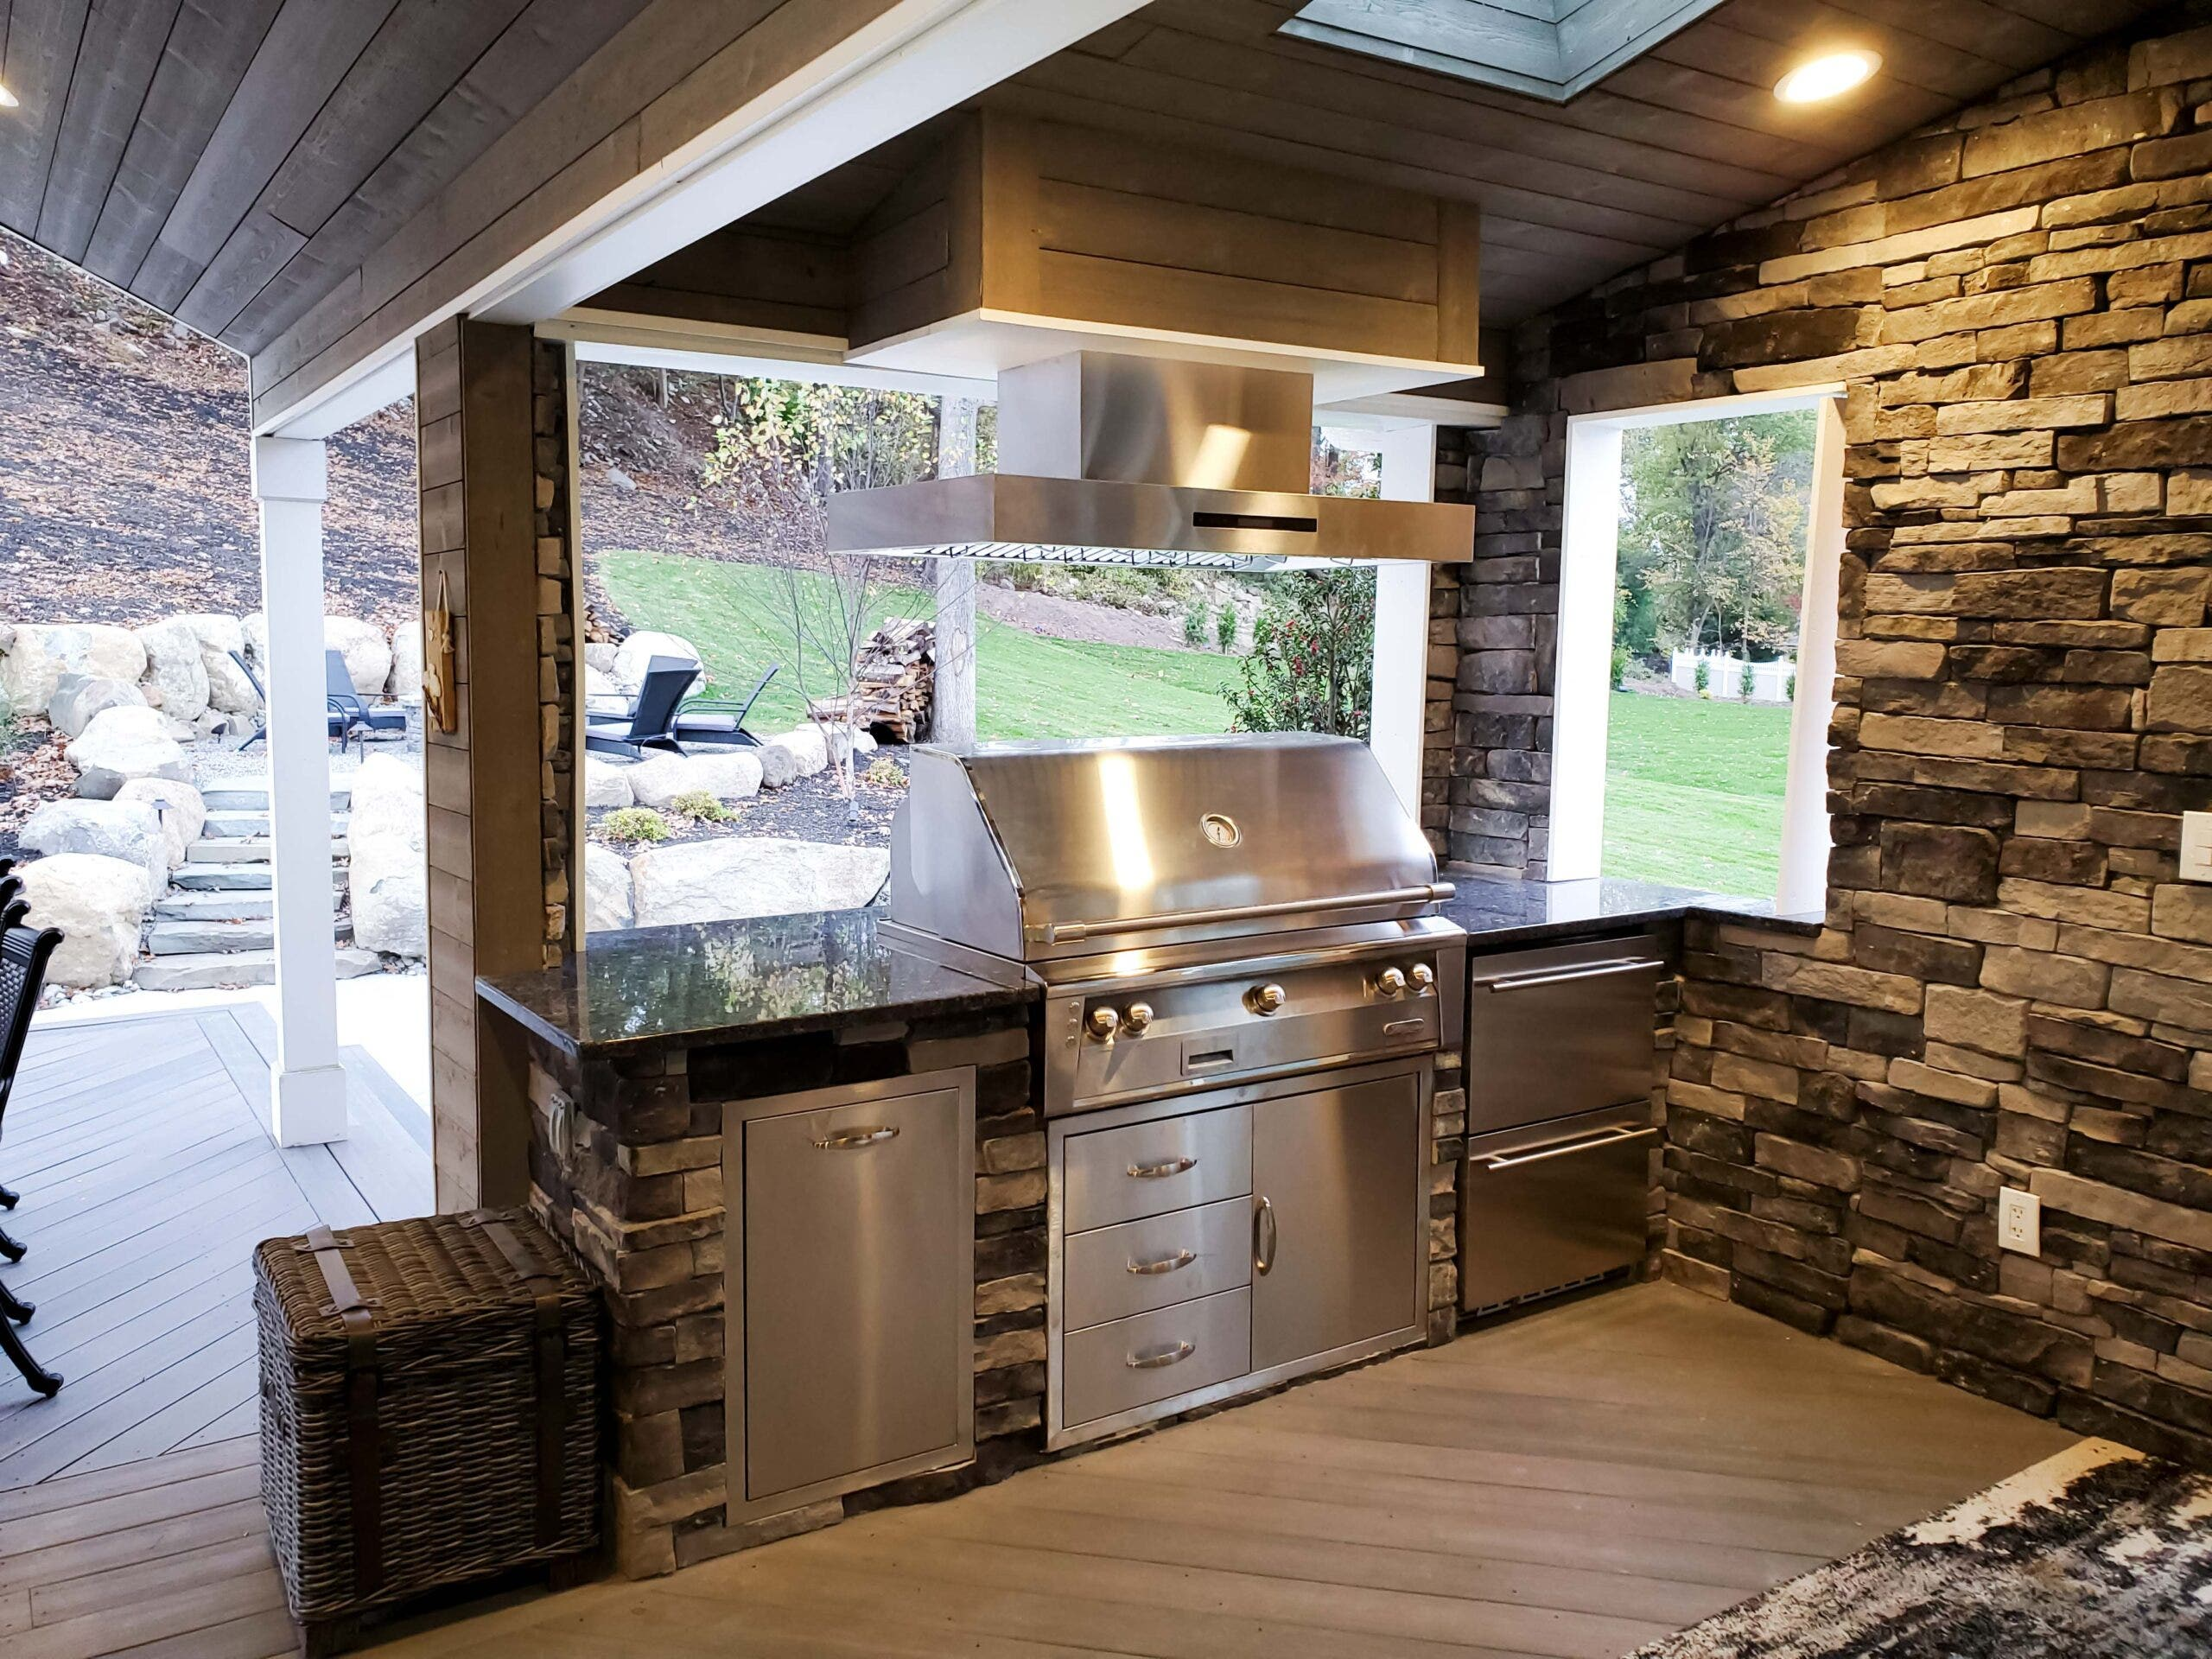 Why Do I Need An Outdoor Range Hood Our Favorite Hoods